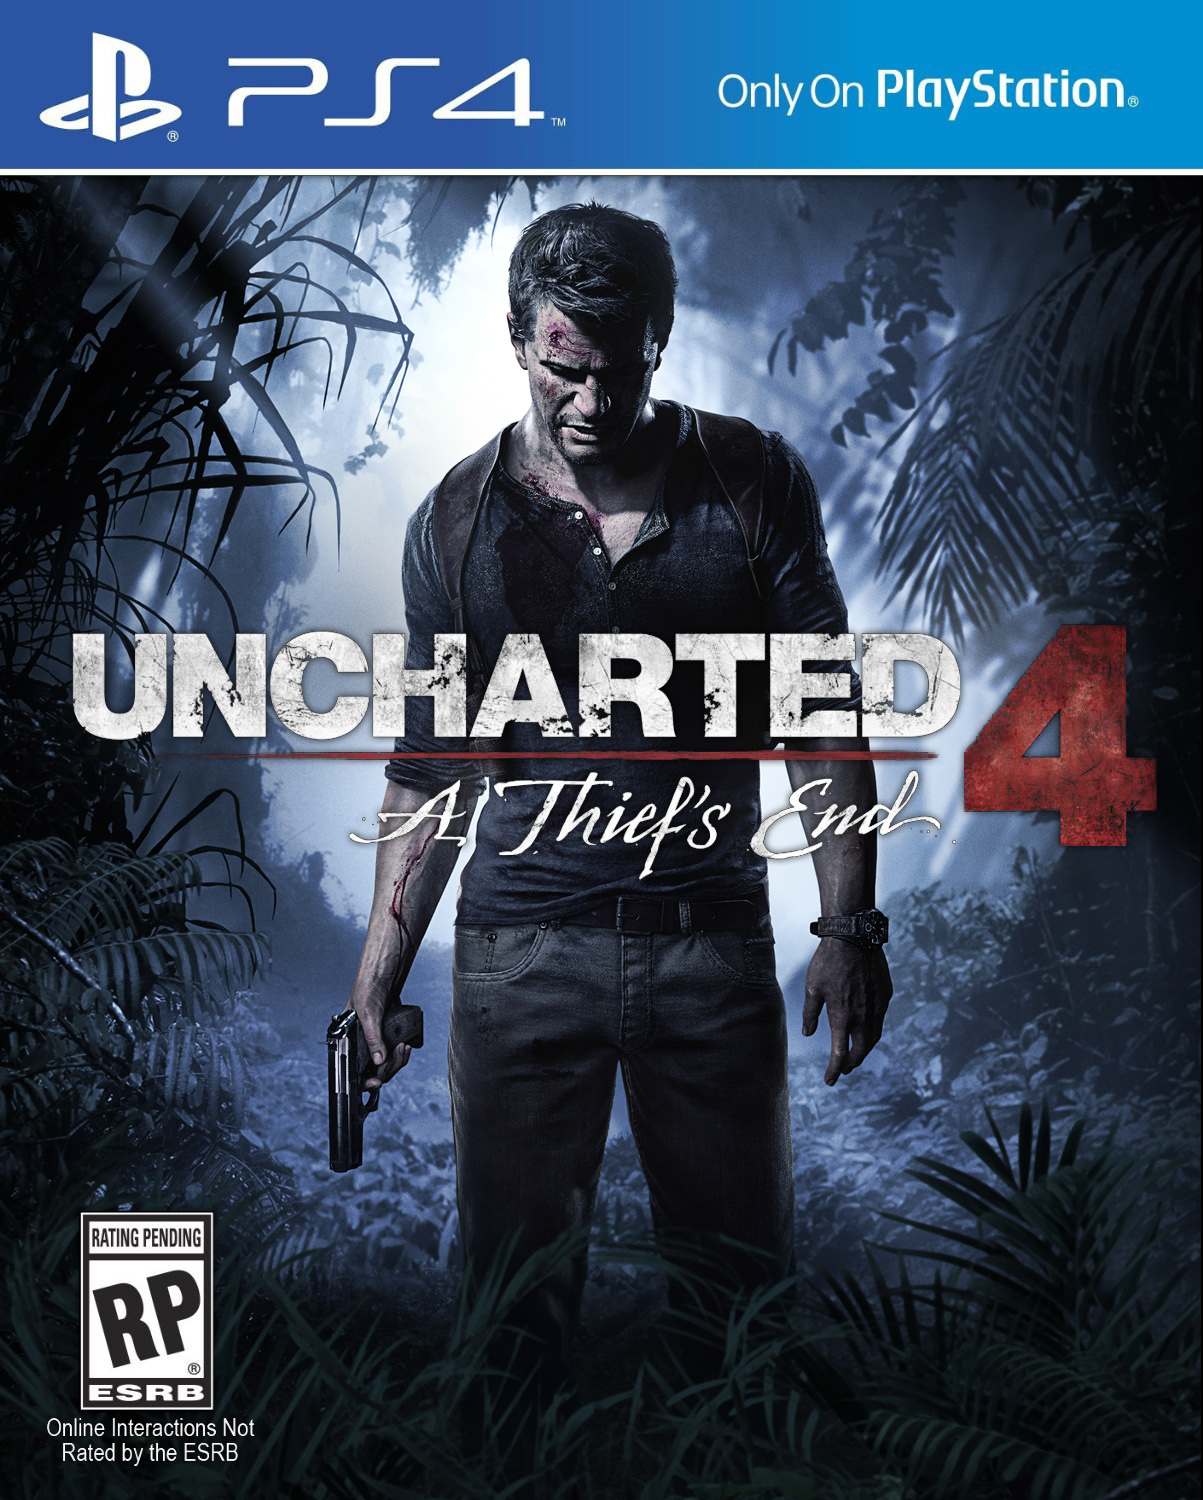 Uncharted 4: A Thief's End / Uncharted 4: Путь вора [PS4 Exclusive] 5.05 / 6.72 / 7.02 [EUR] (2016) [Русский] (v1.33)